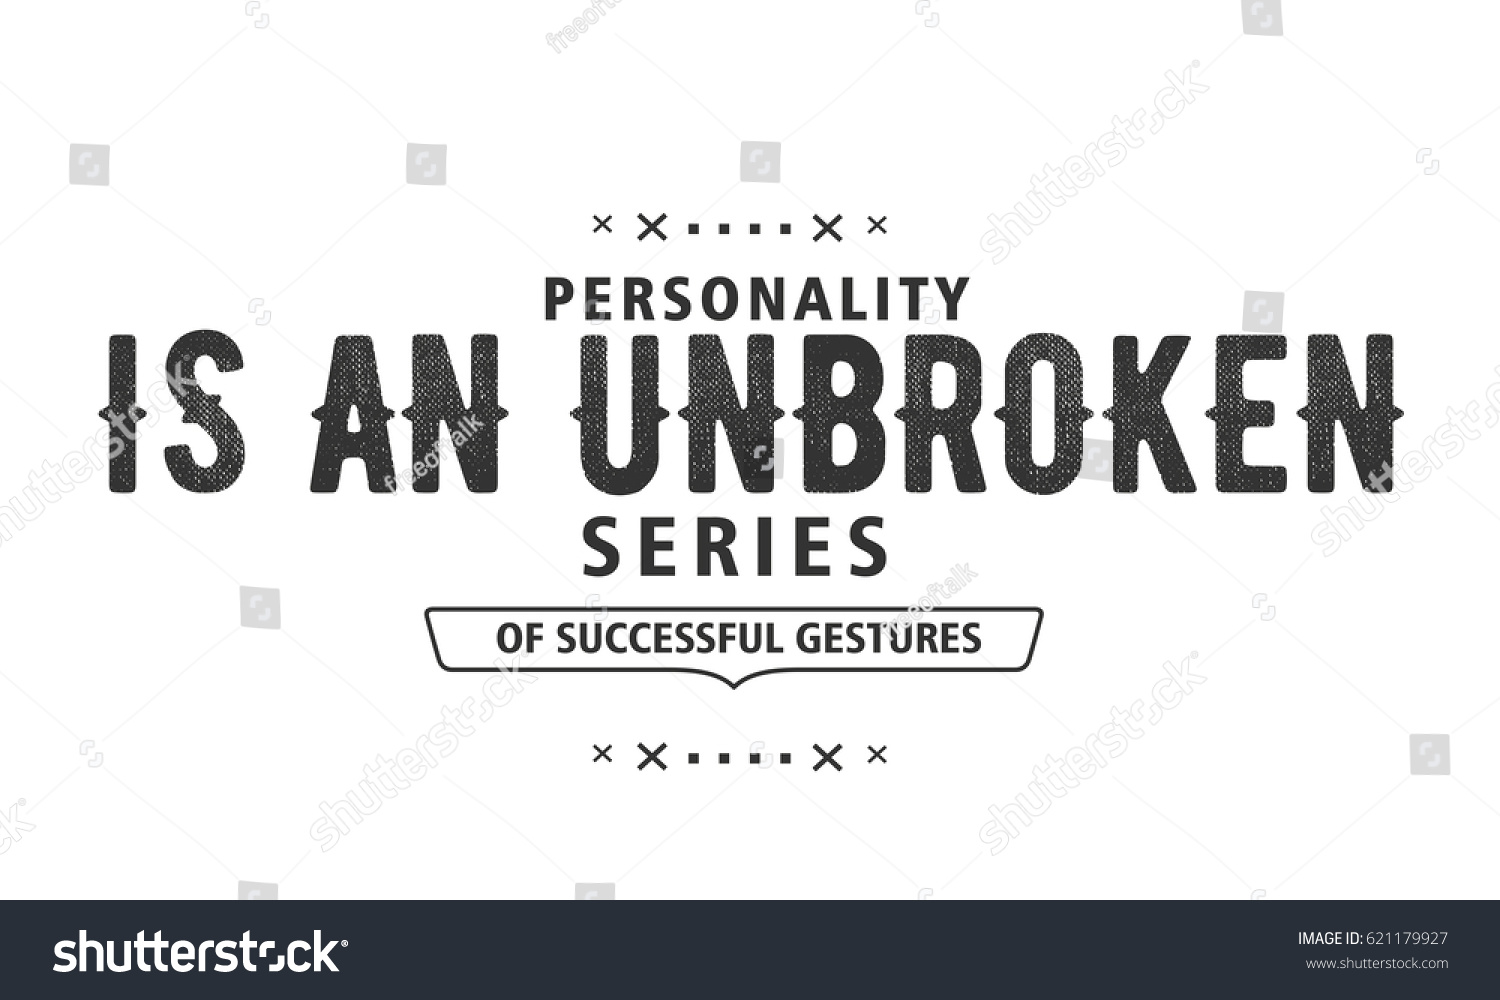 Unbroken Quotes Personality Unbroken Series Successful Gestures Personality Stock